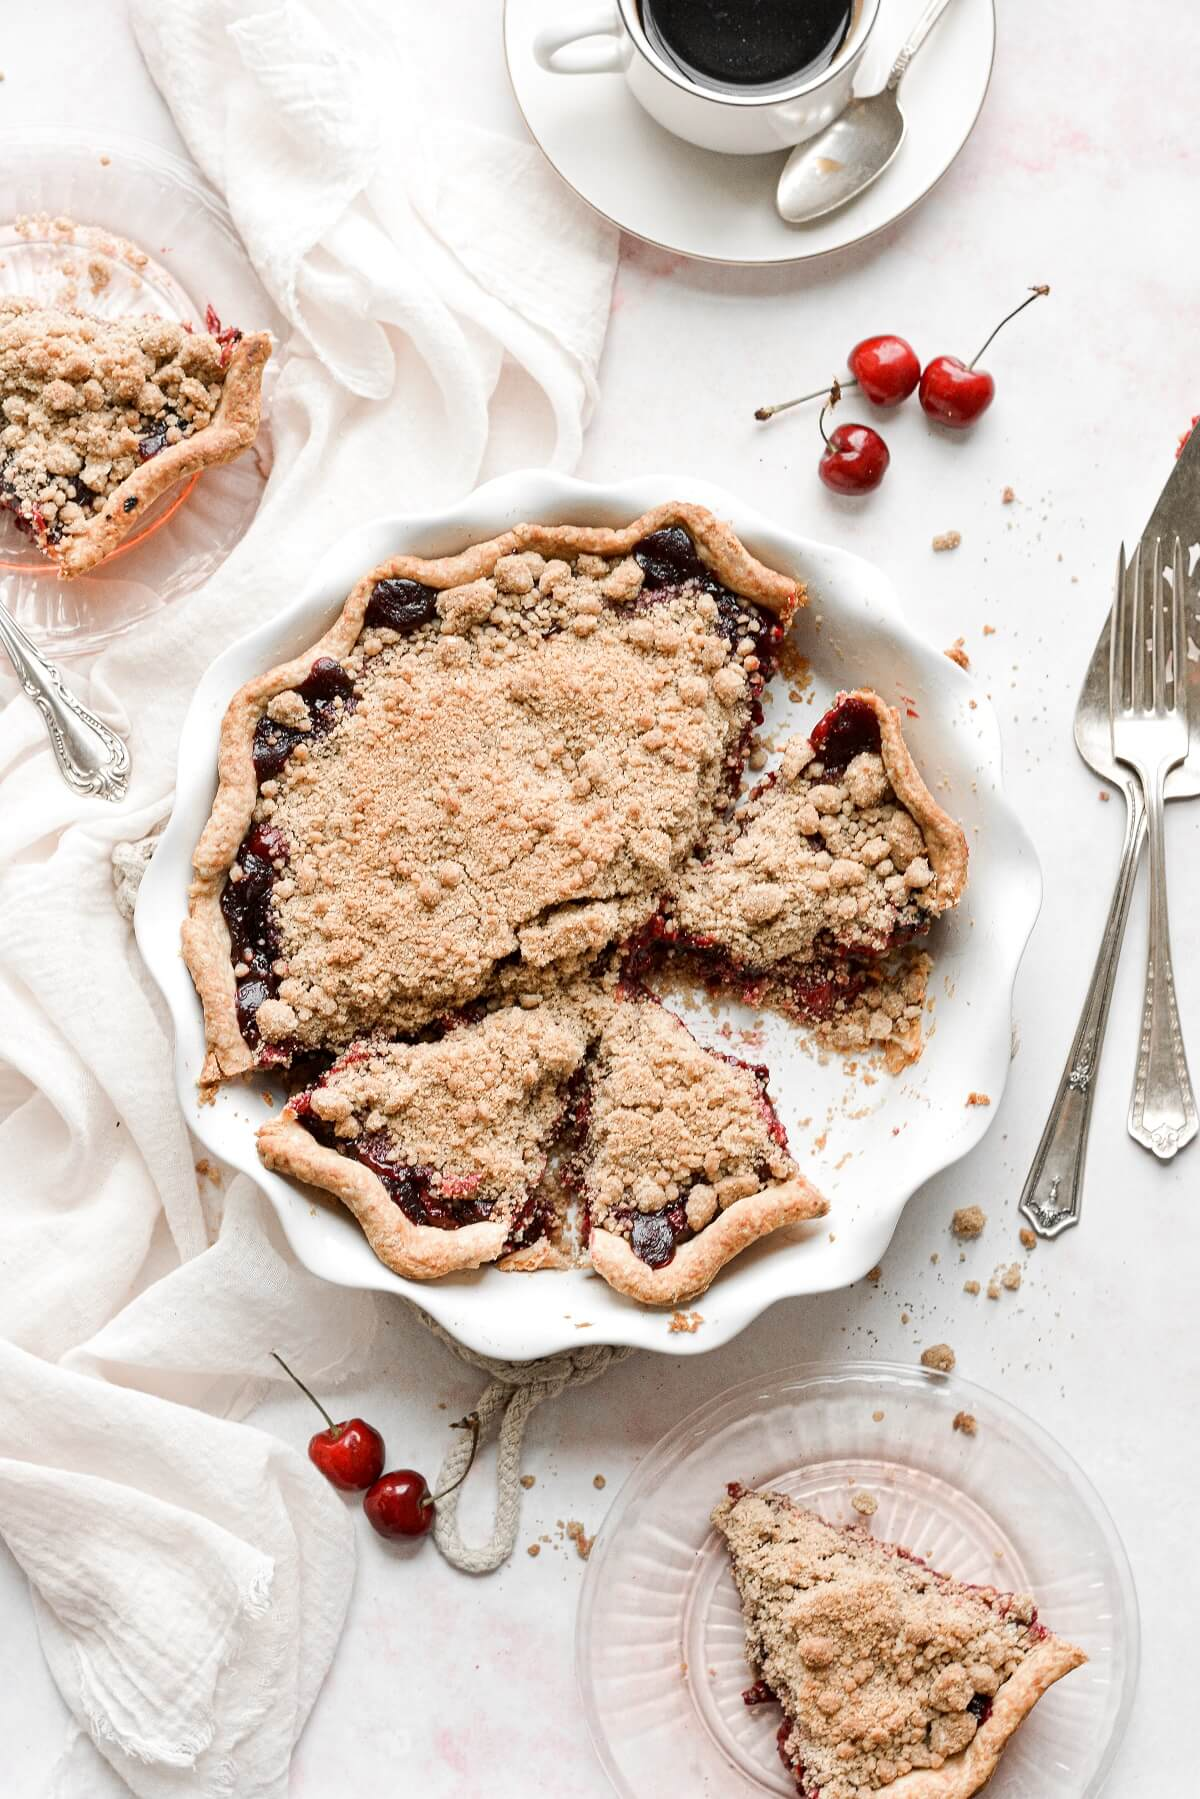 Cherry crumb pie with several slices cut.